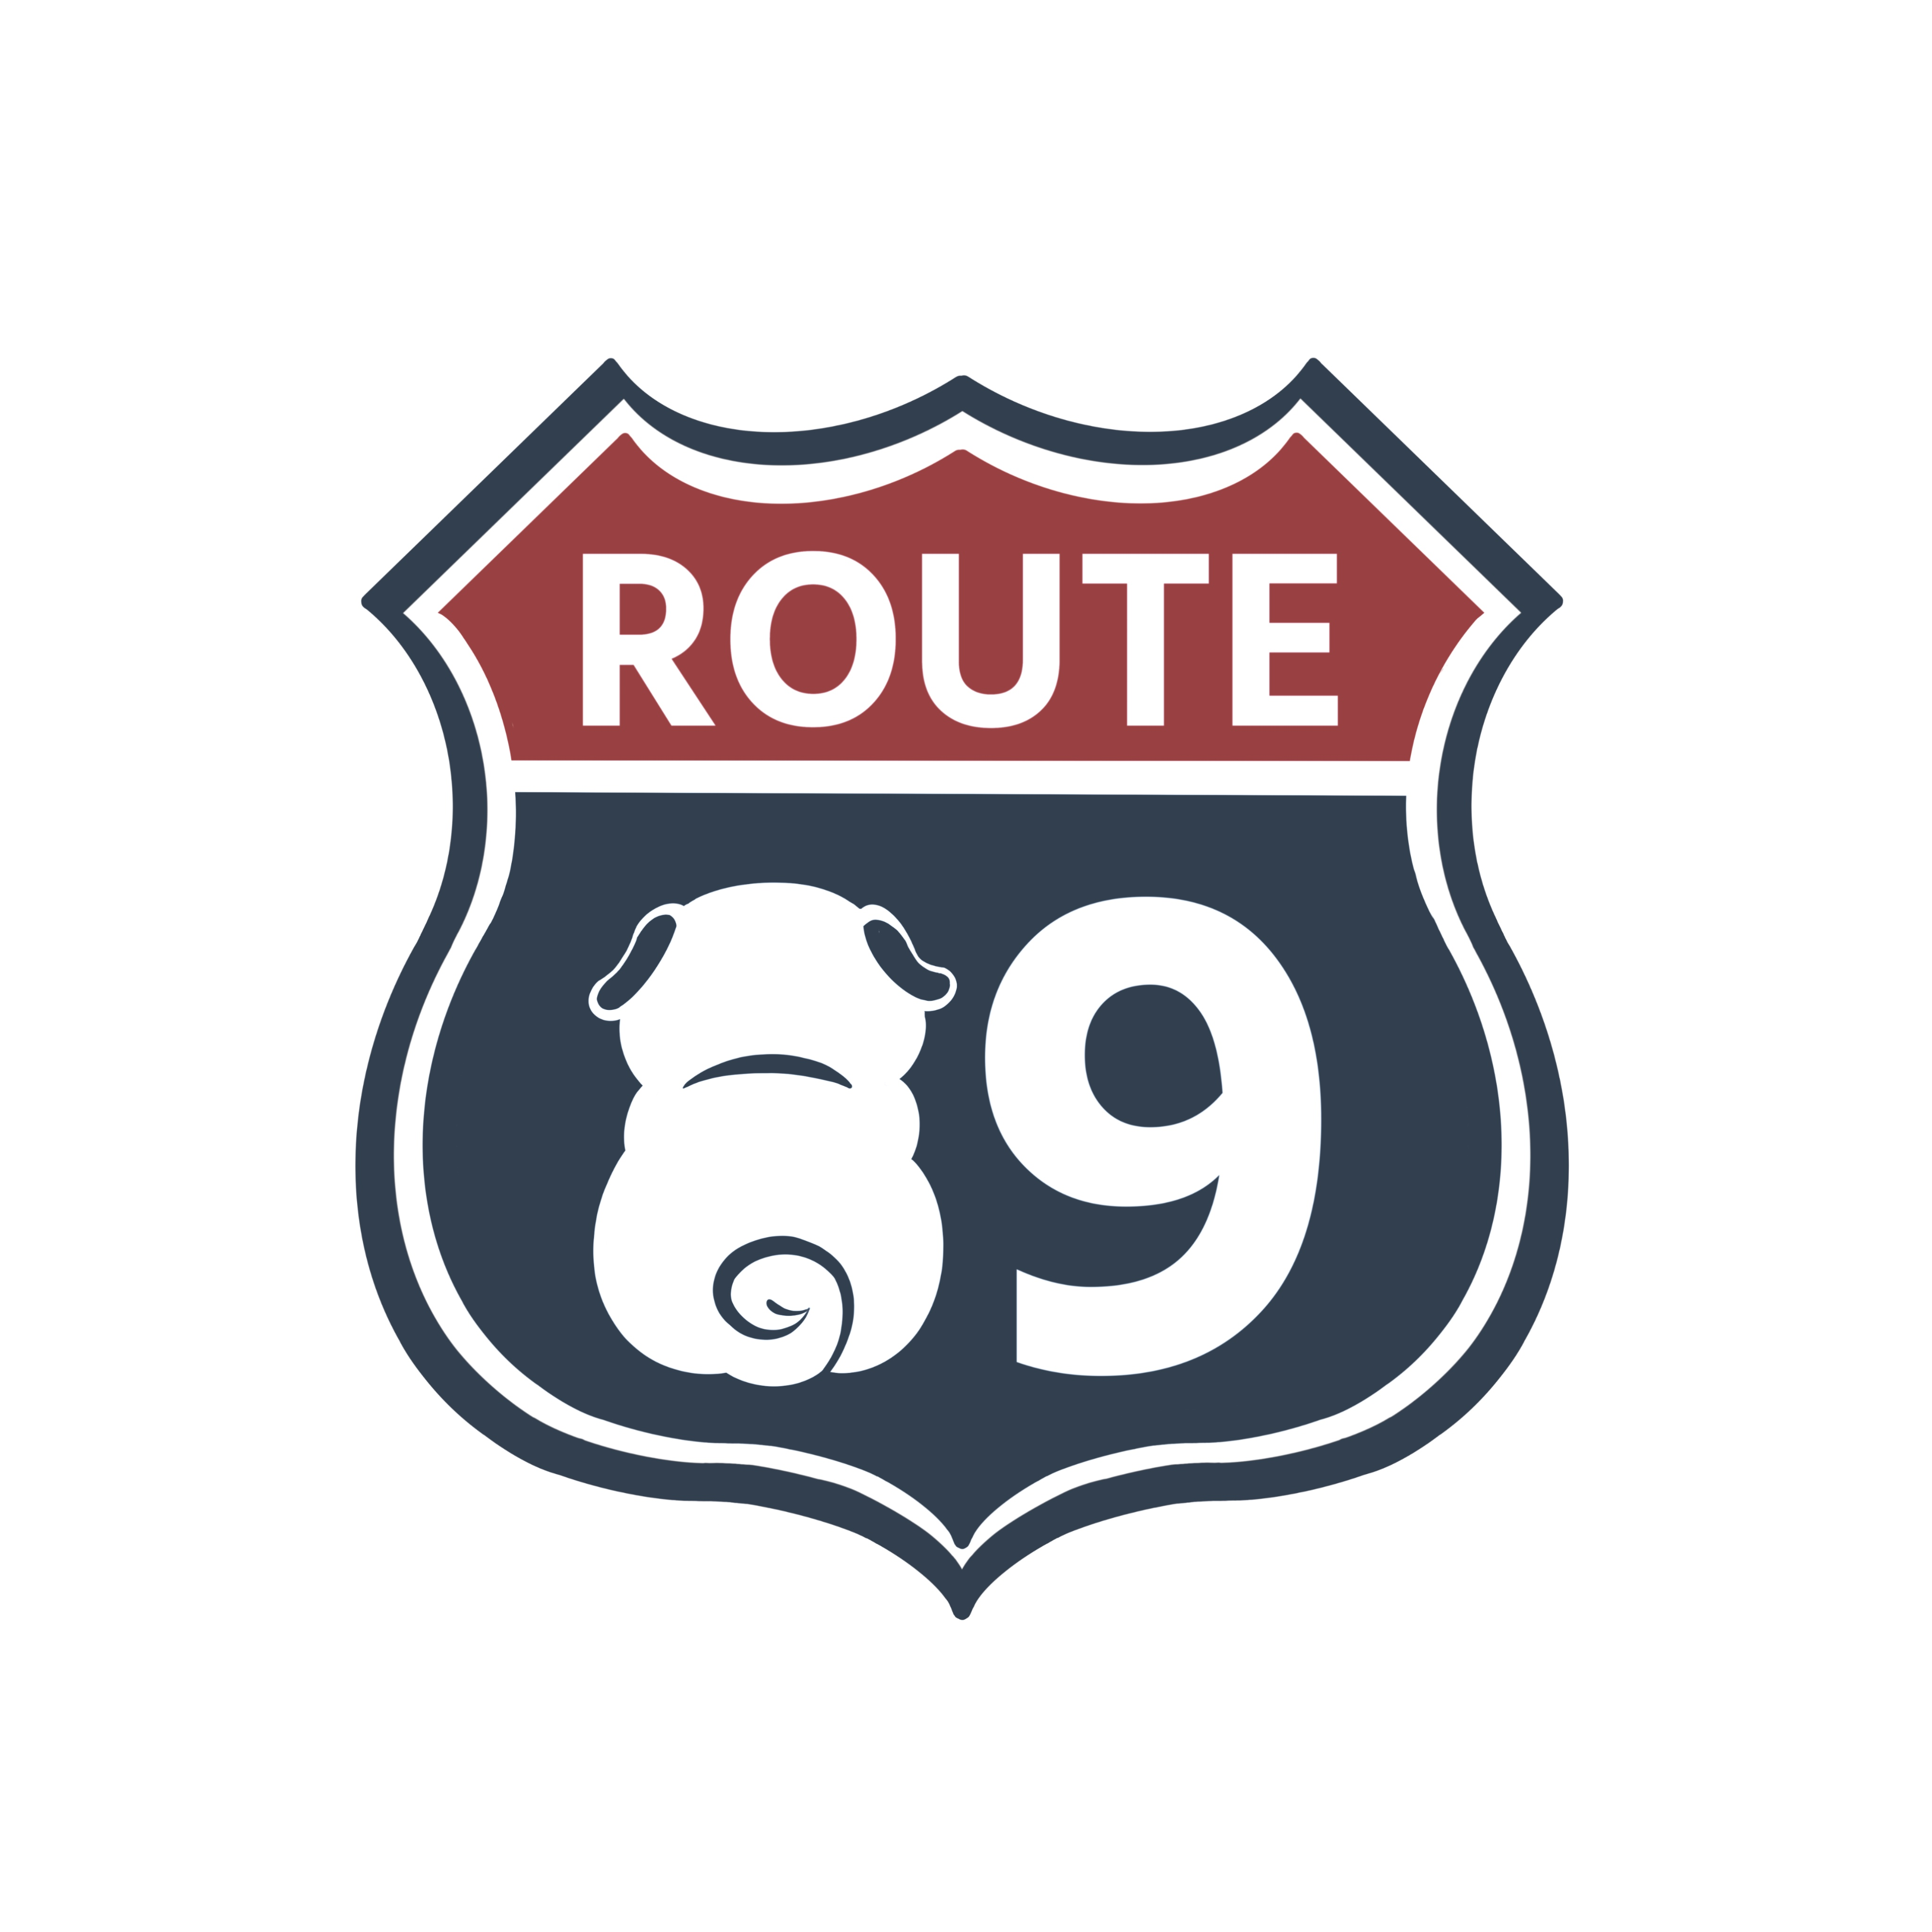 Route89ステッカー 新色もうすぐ完成!